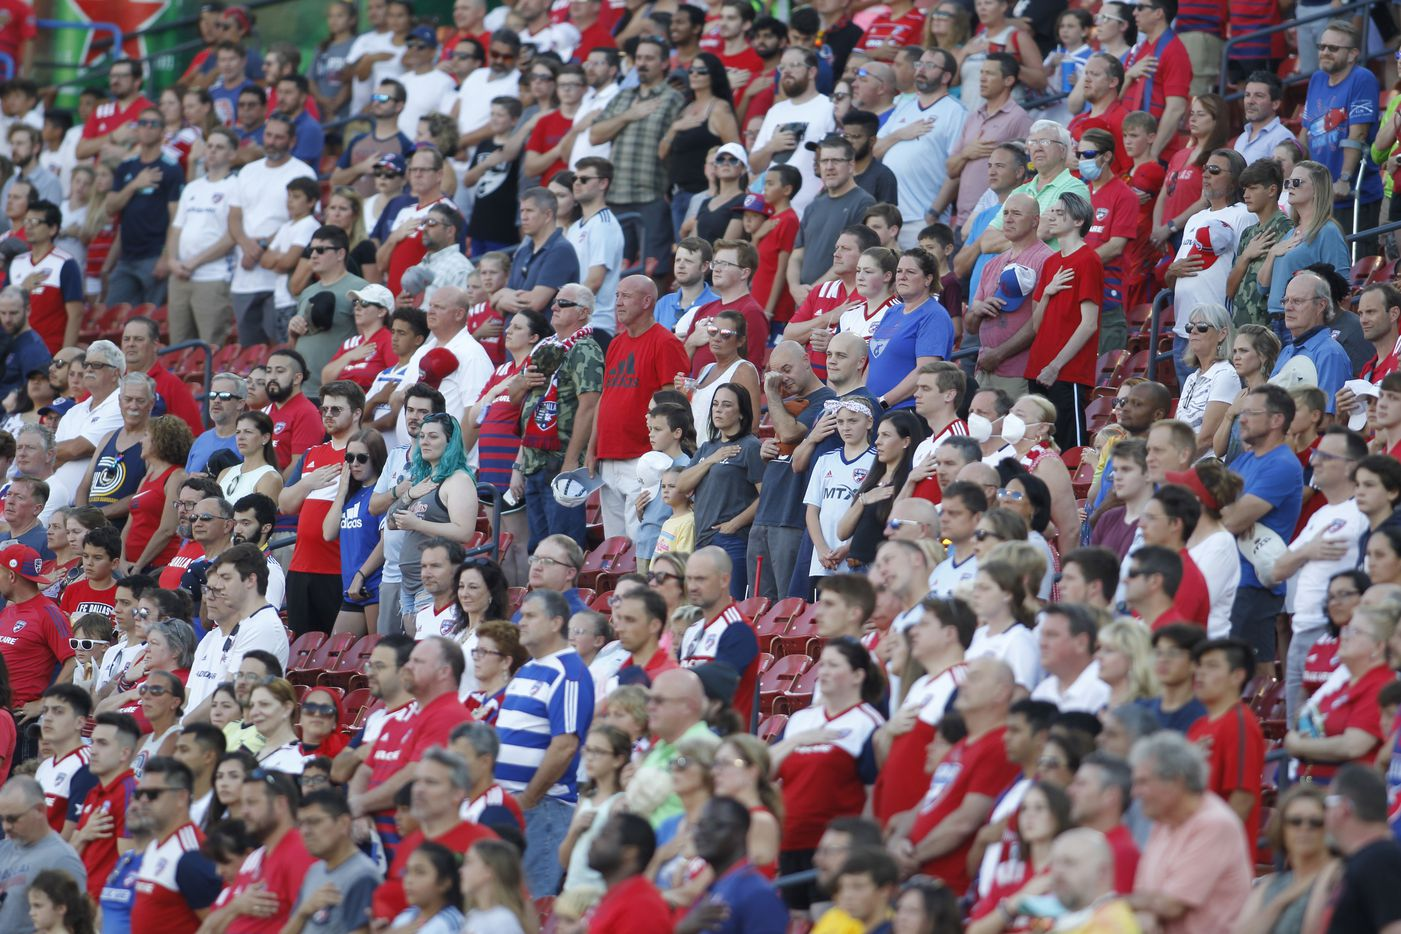 A large contingent of FC Dallas fans pause for the playing of the national anthem prior to the start of their match against Minnesota United. The two teams played their MLS match at Toyota Stadium in Frisco on June 19, 2021. (Steve Hamm/ Special Contributor)